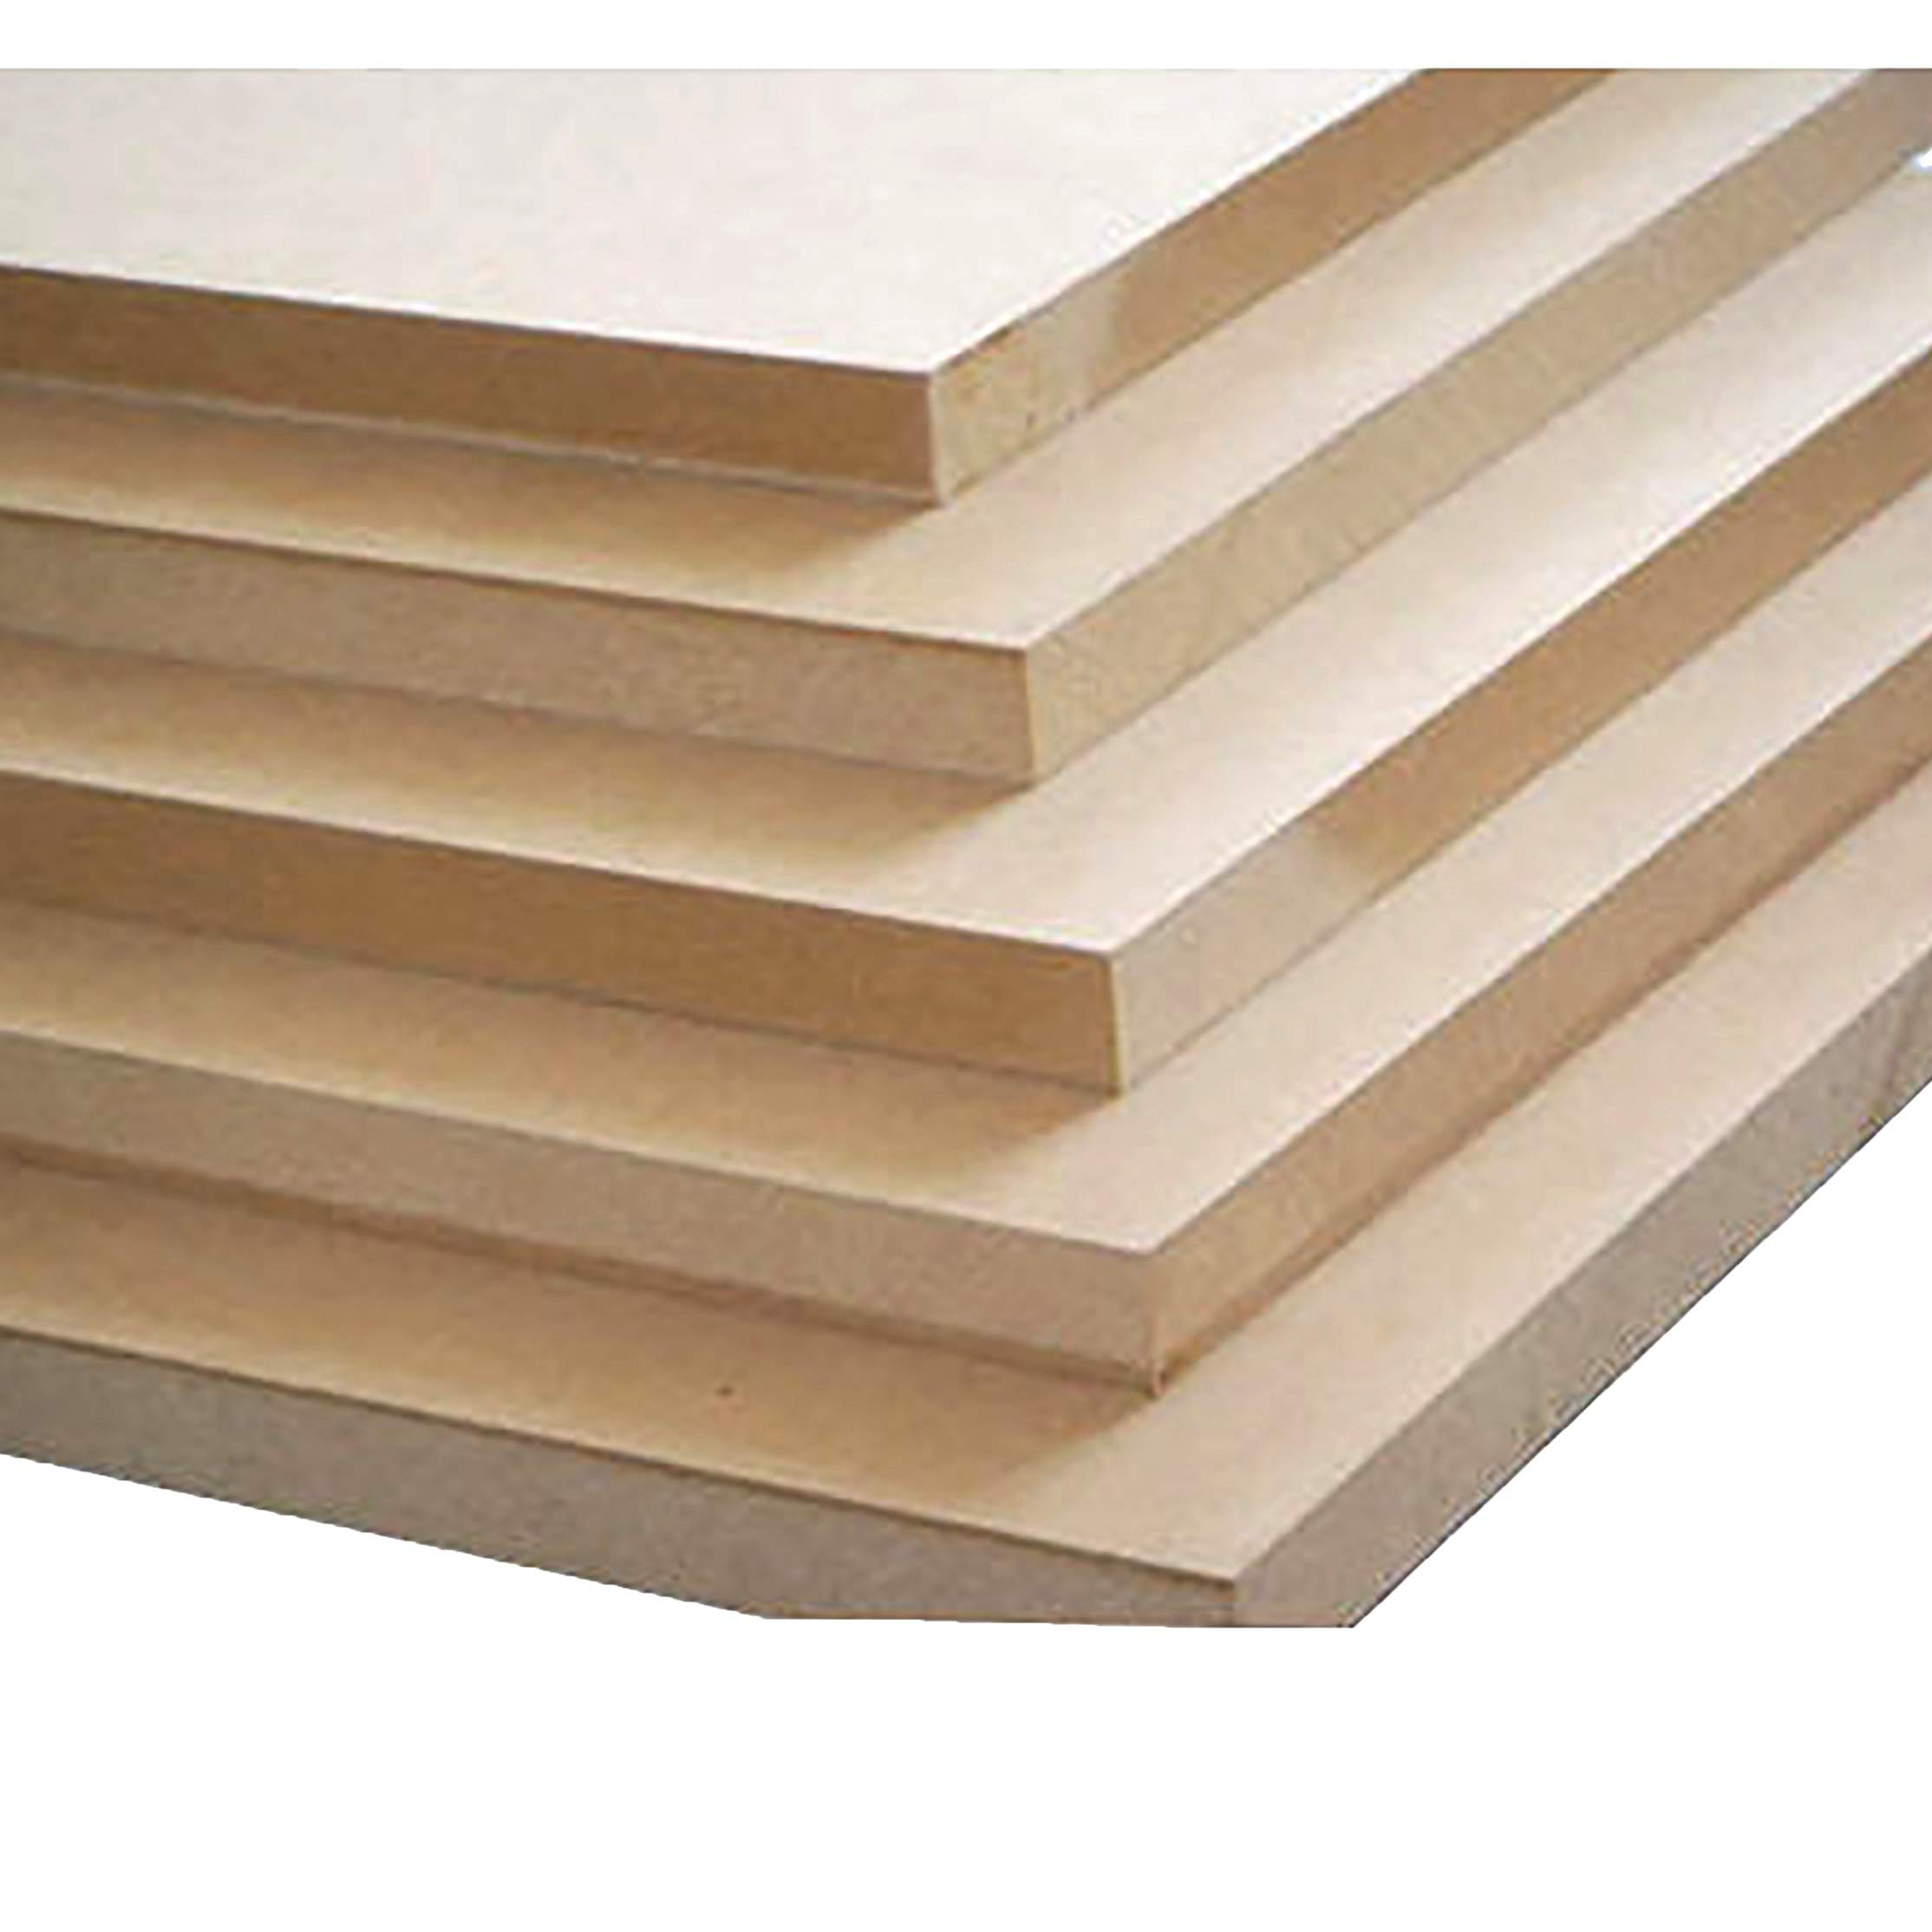 1/2'' (12mm) X 12'' X 24'' MDF Board (3 Sheets) by DGwood